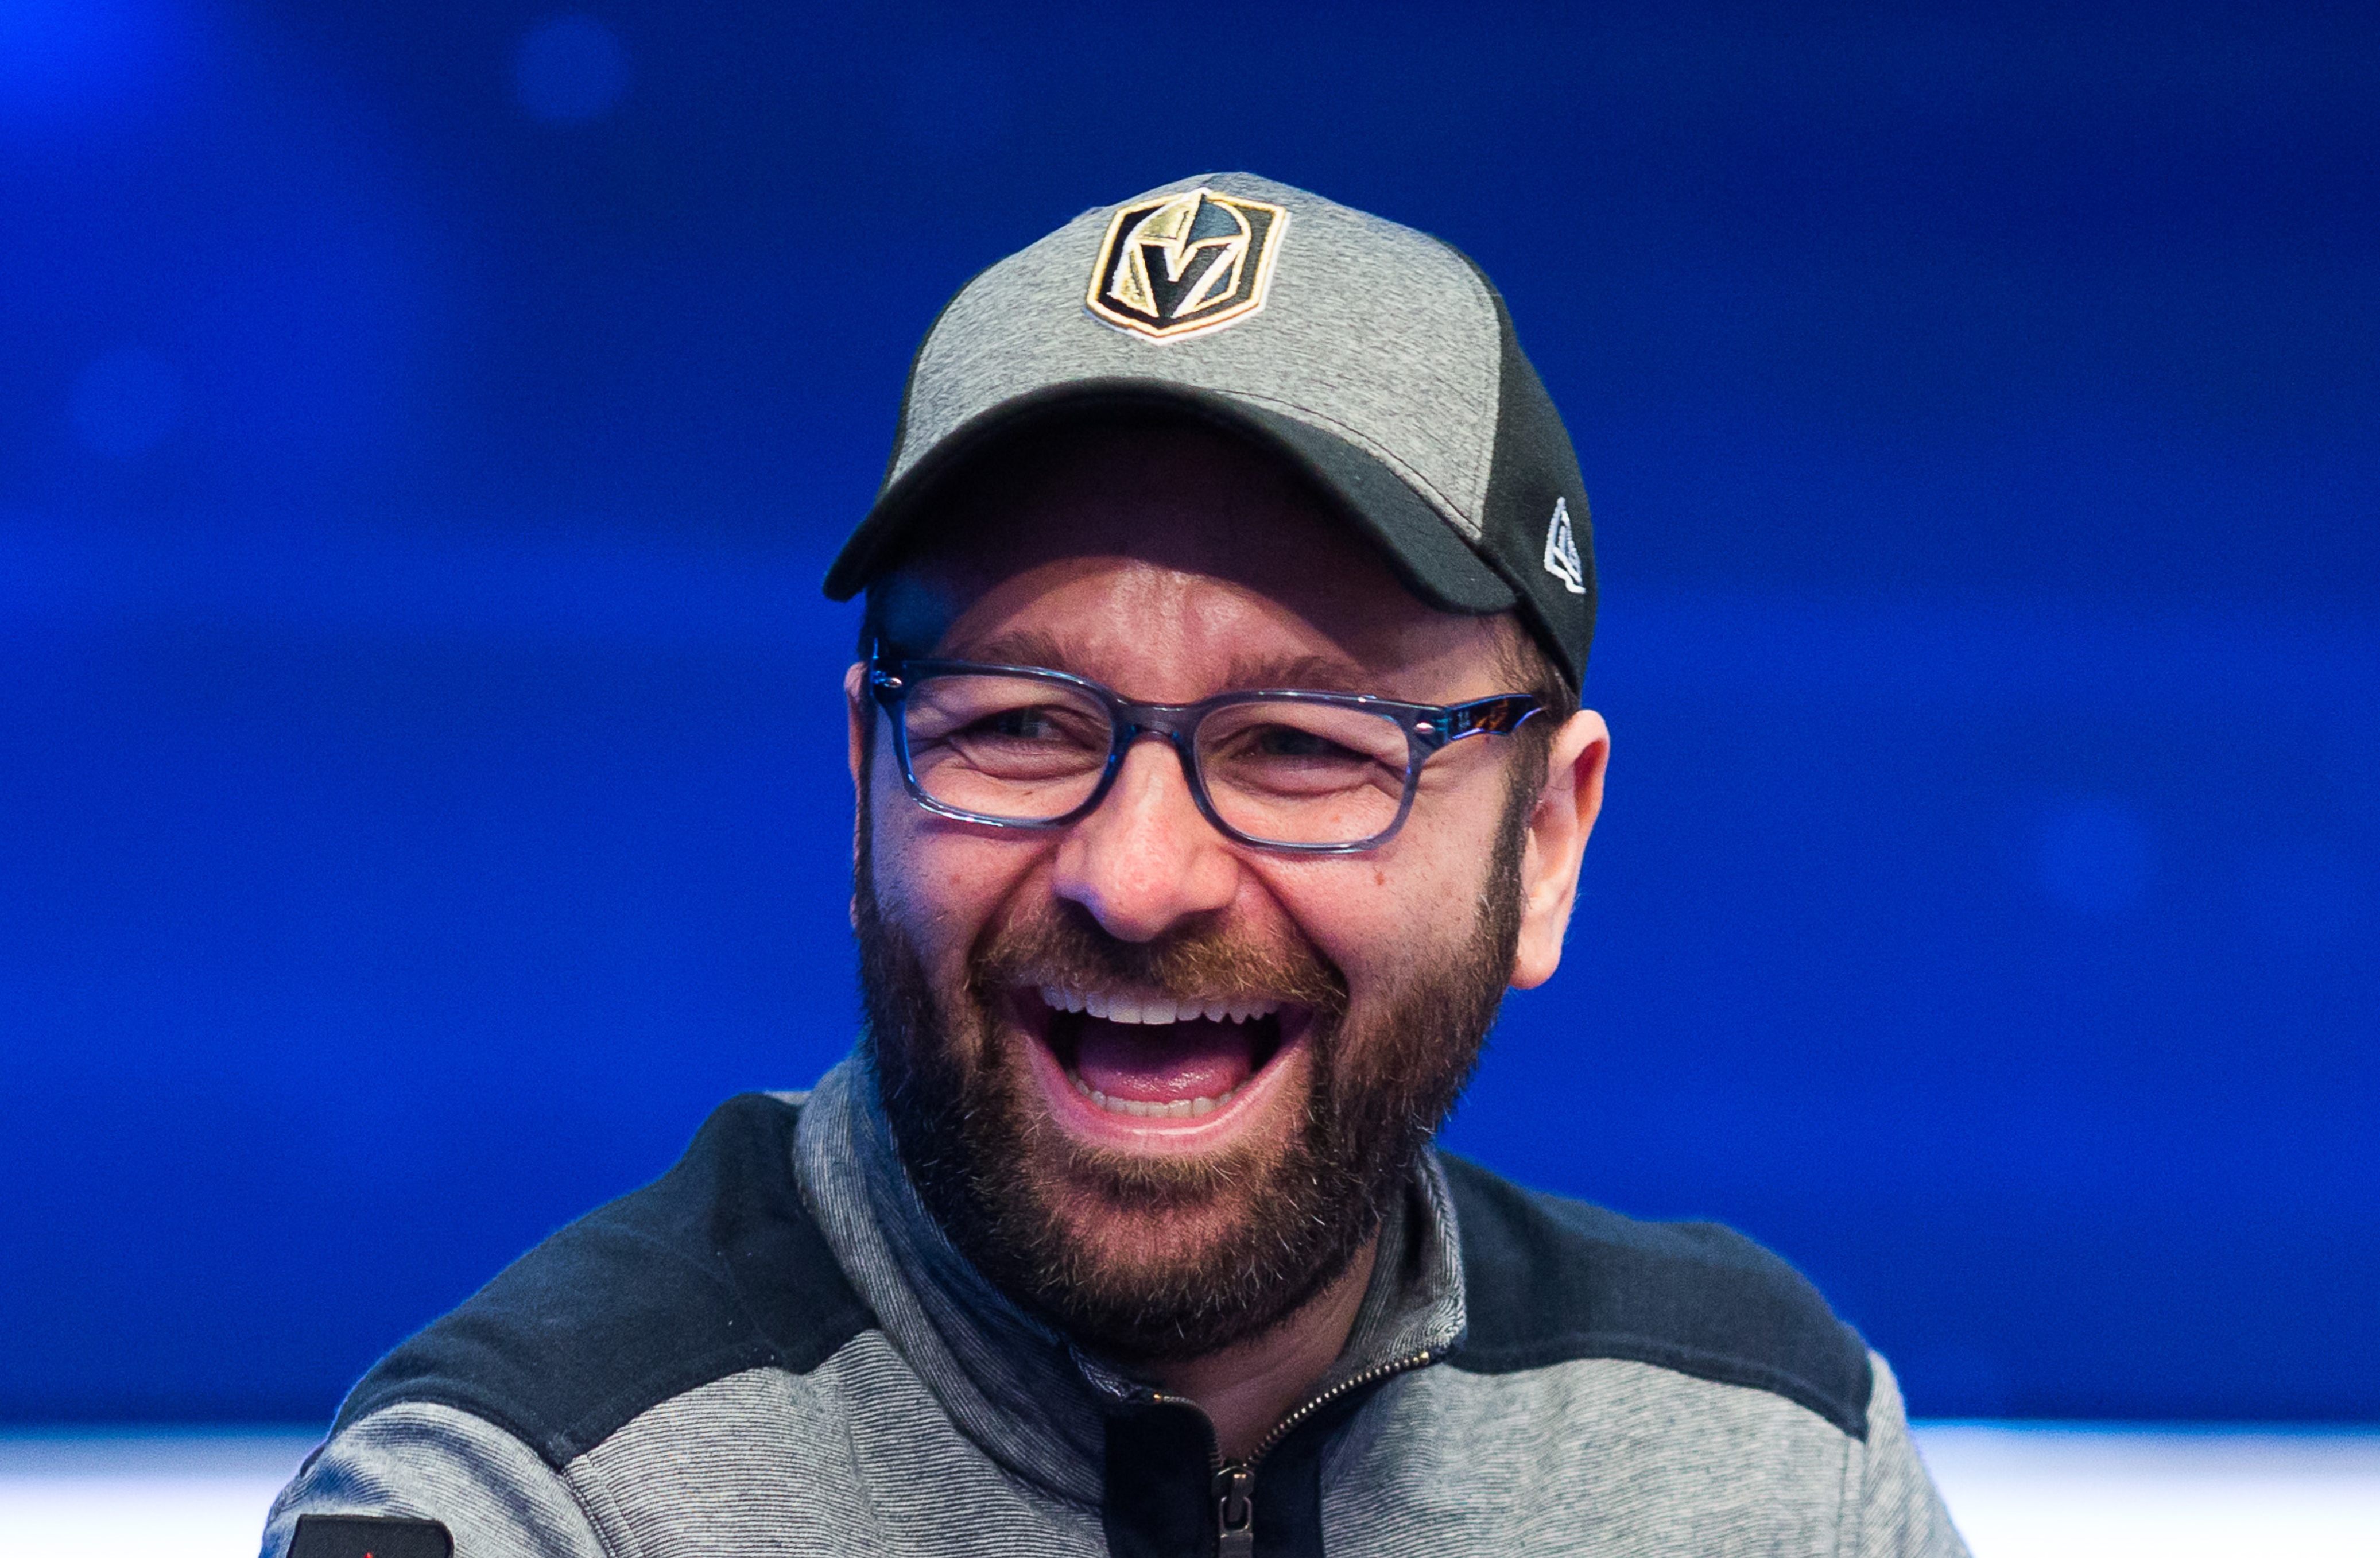 Riveting Colossus contest rounds off WSOPE: ElKy wins gold; Daniel Negreanu crowned WSOP POY